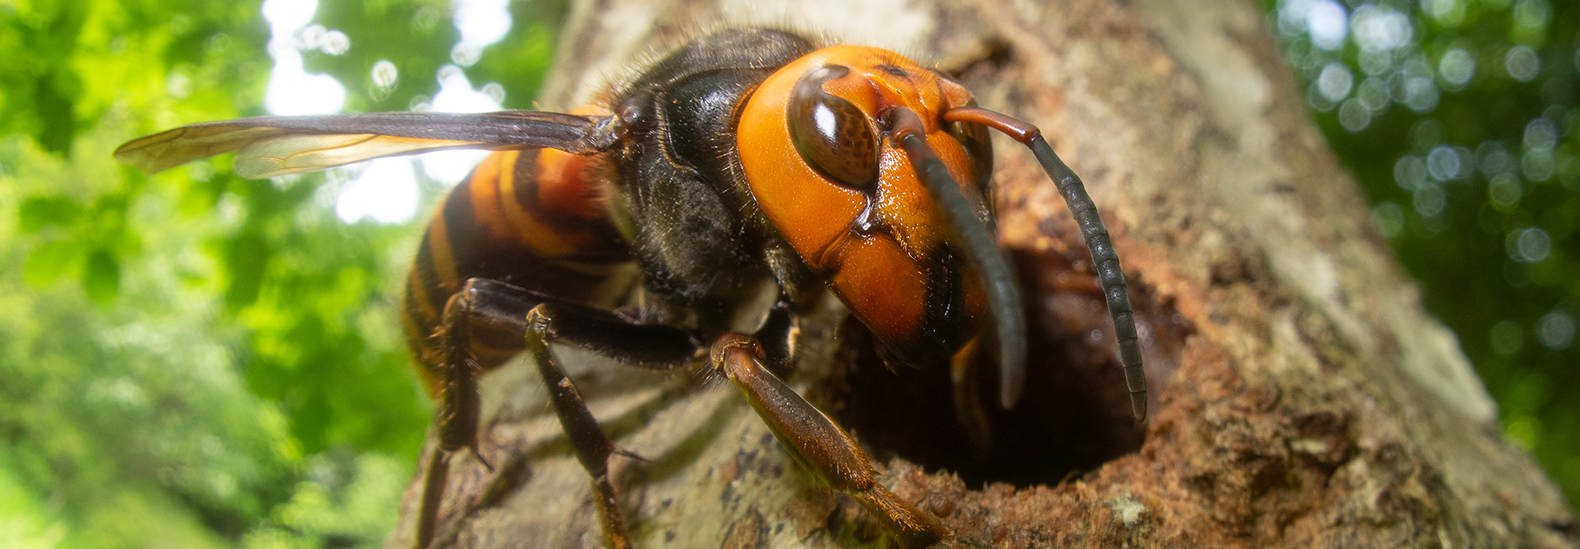 Scientists raise alarm over the resurgence of murder hornets